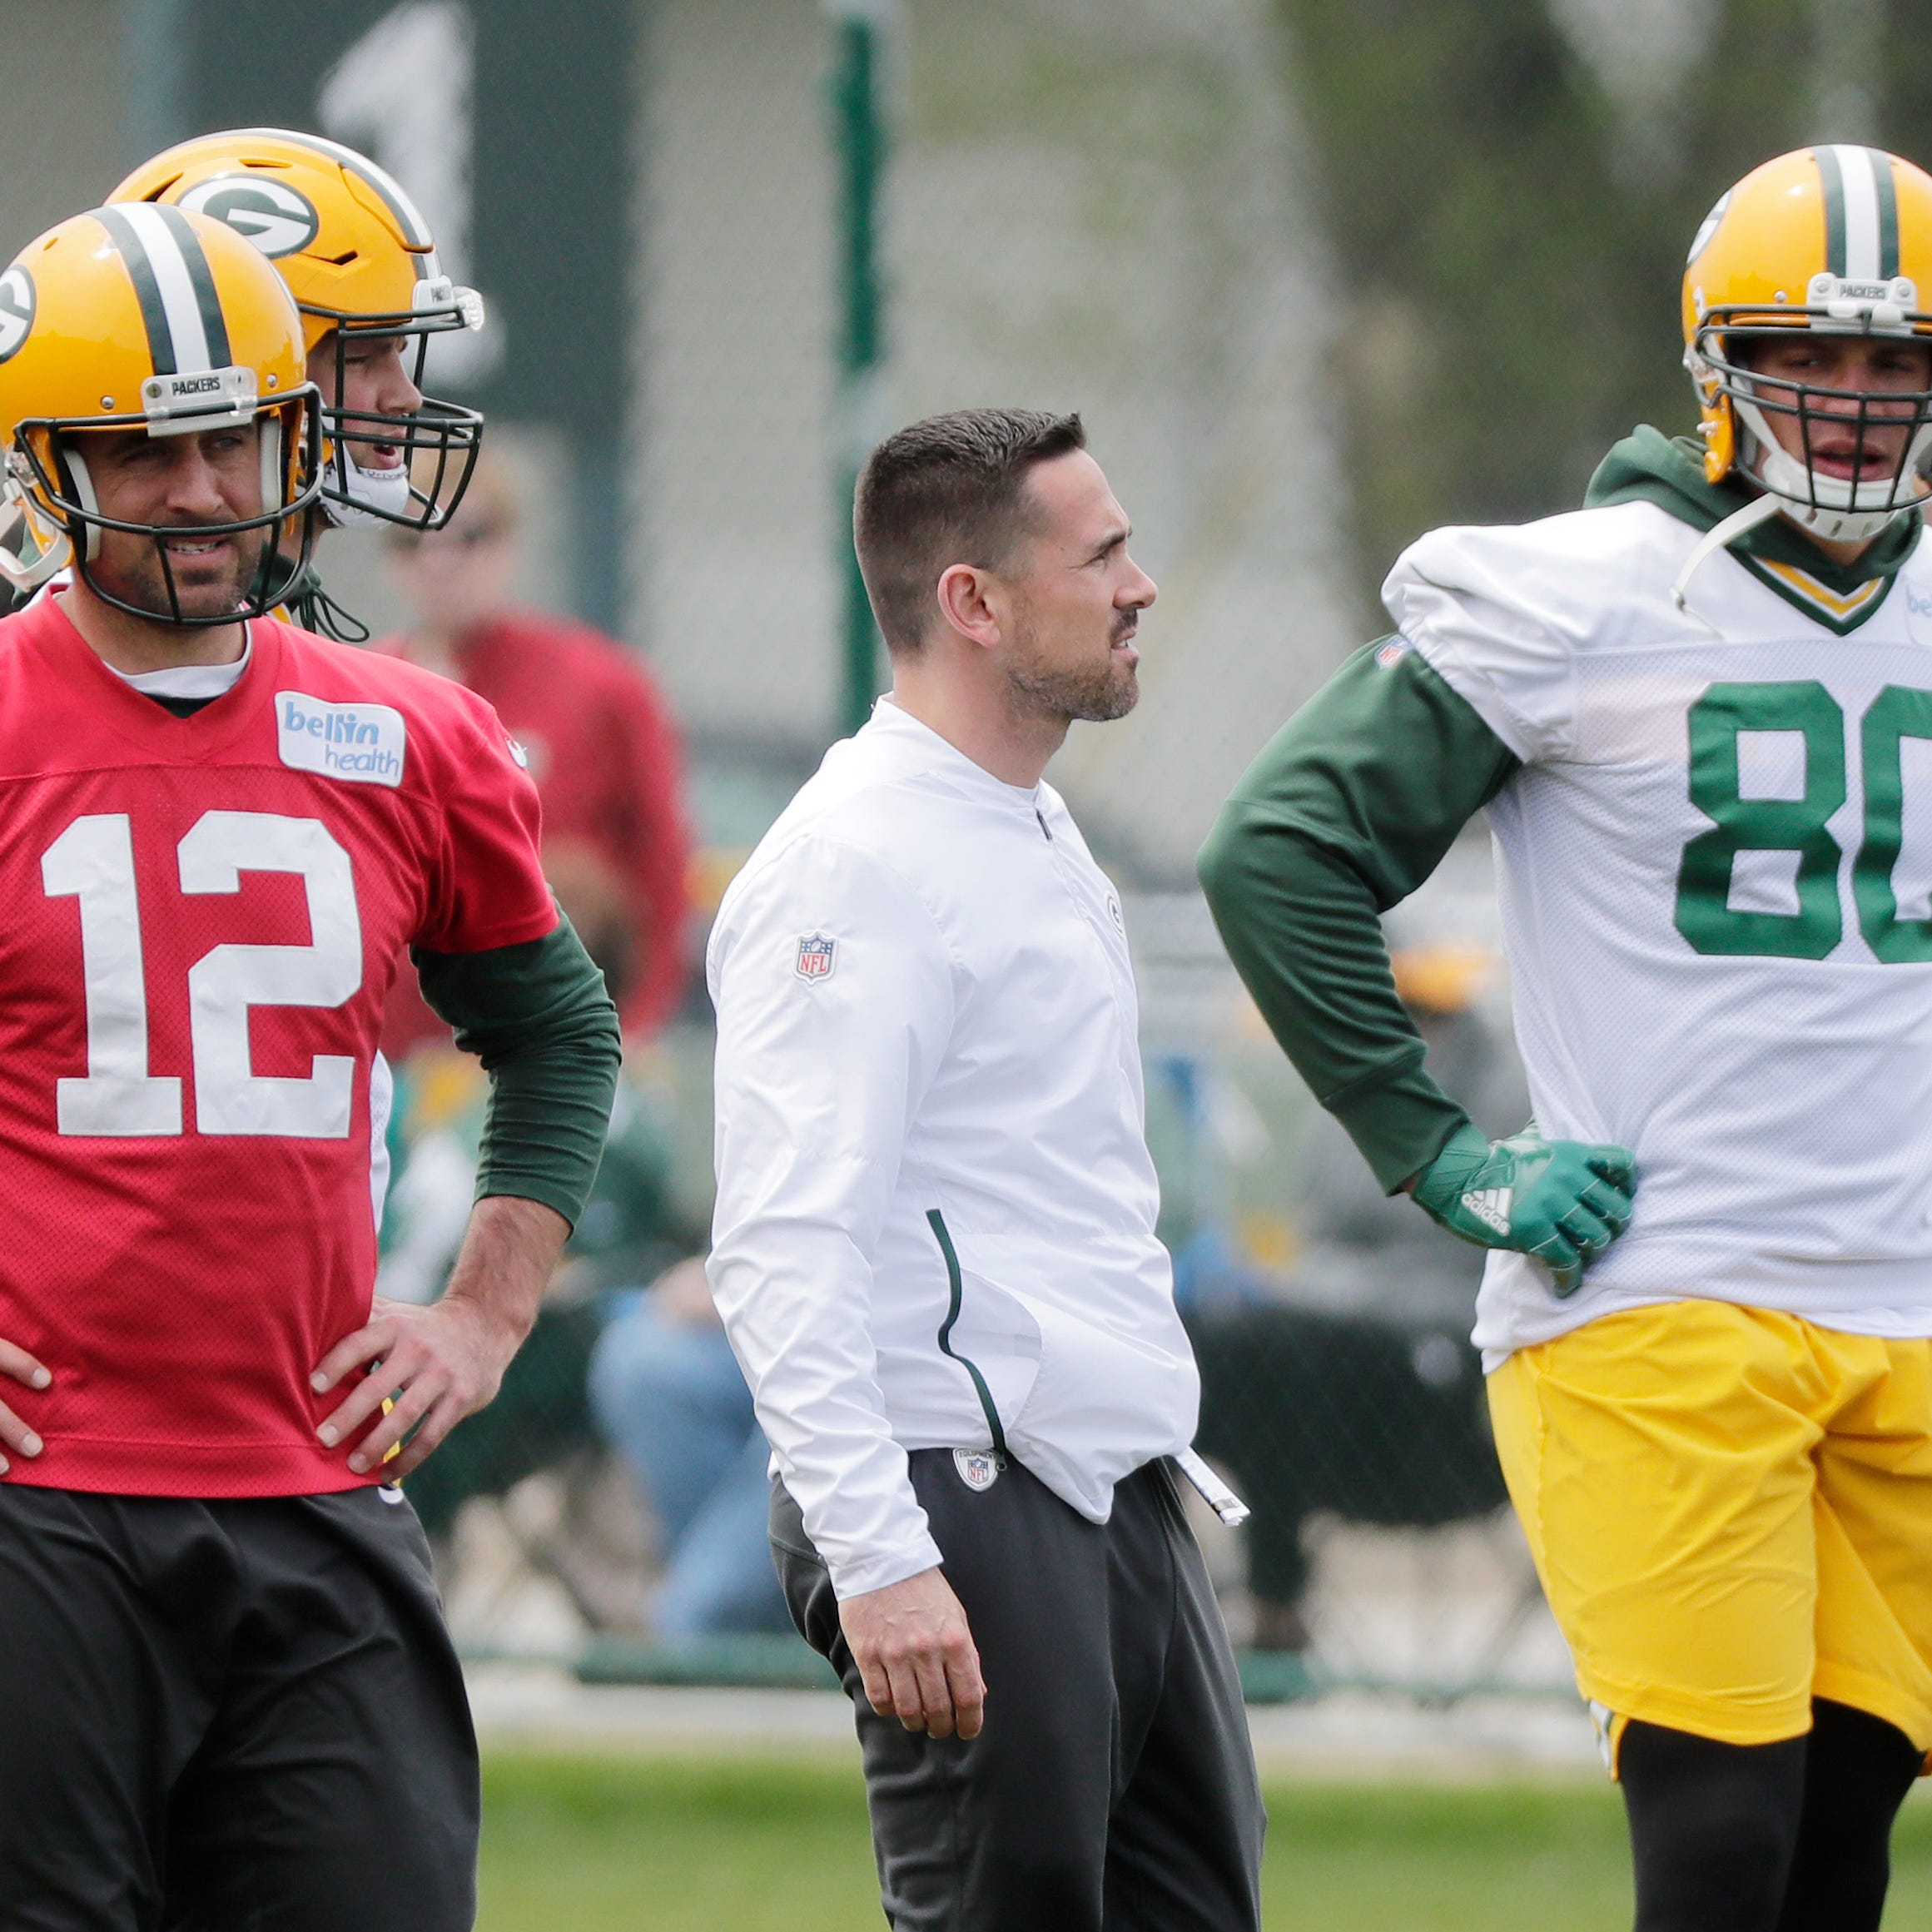 Packers notes: Learning new offense 'a work in progress' for Aaron Rodgers